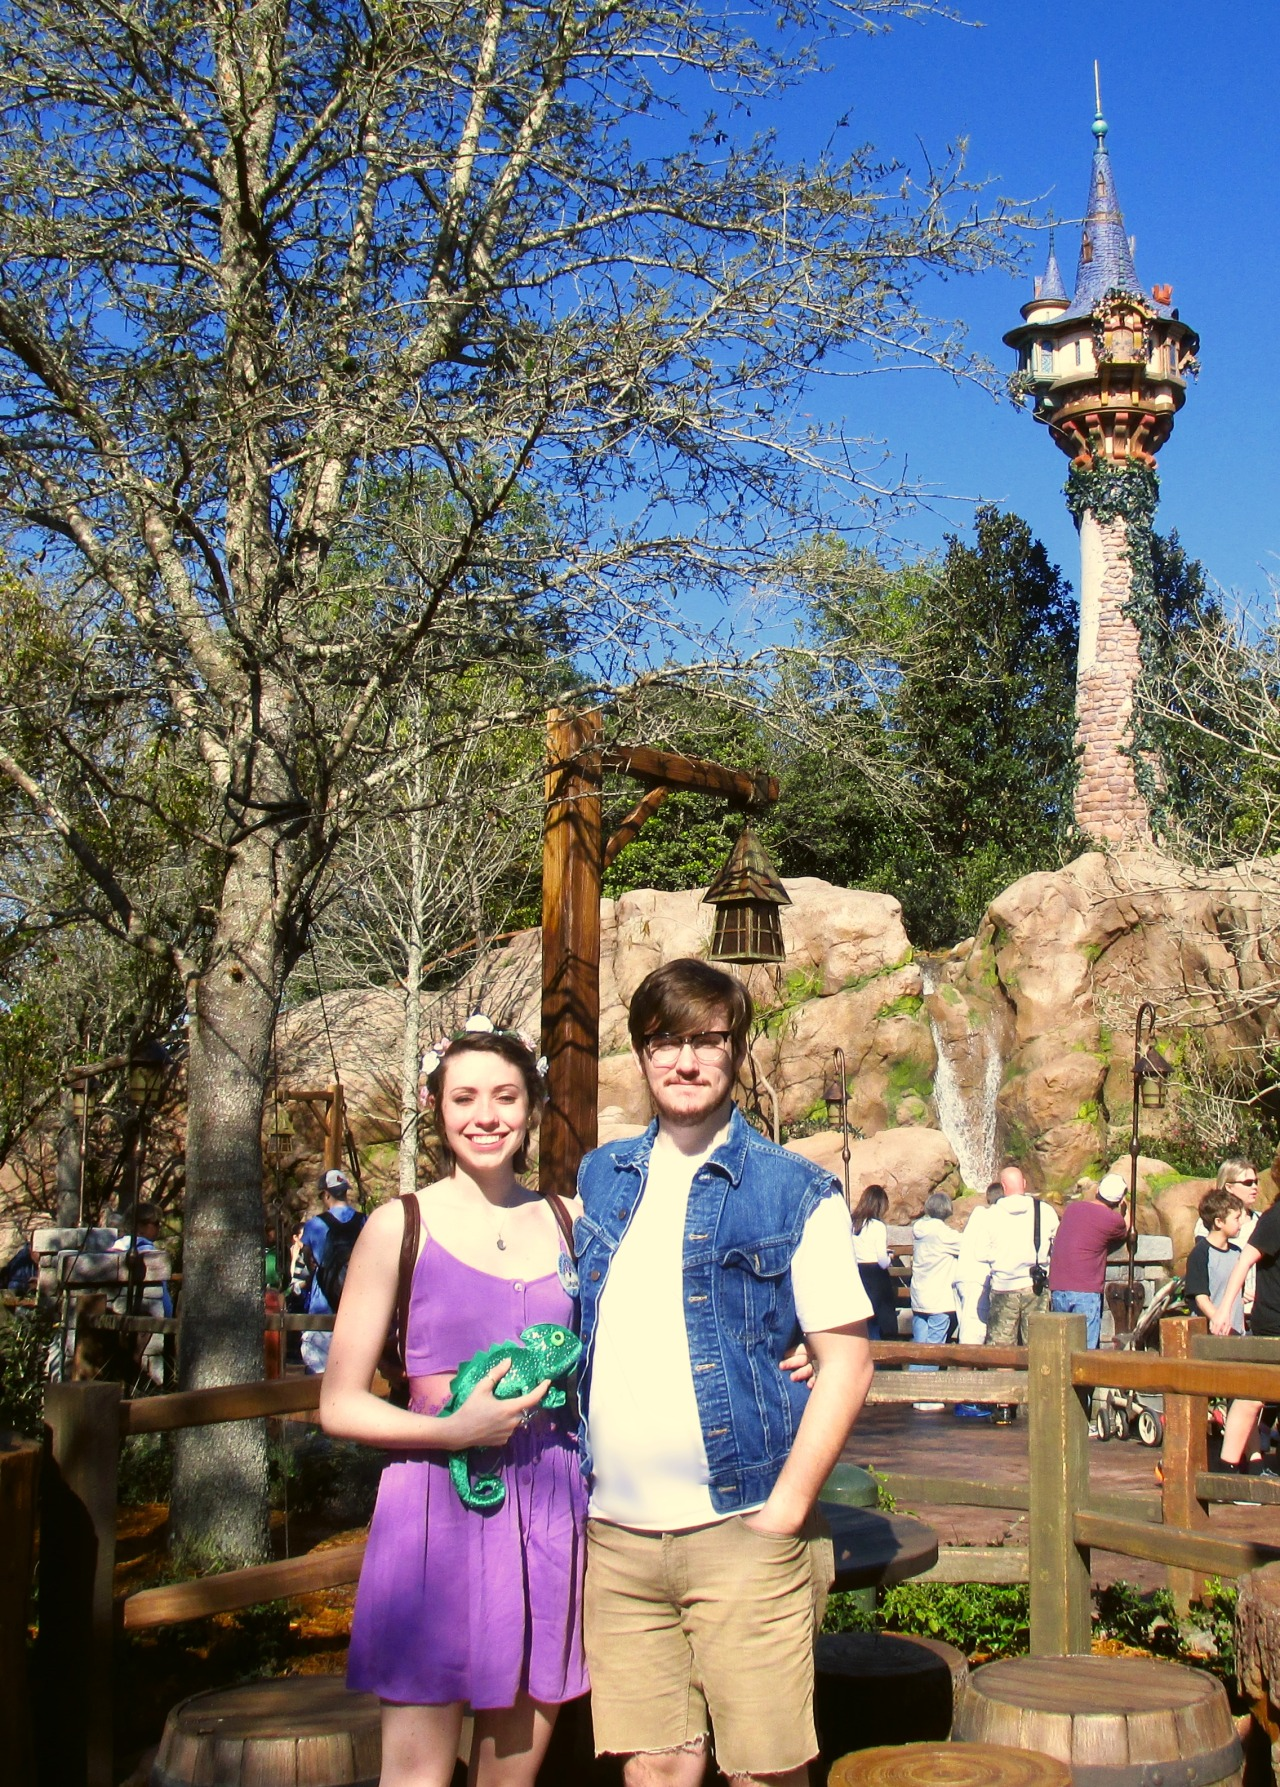 thefox-andthehound:  Austin and I as Rapunzel (post haircut) and Eugene, with Pascal, in front of the tower!